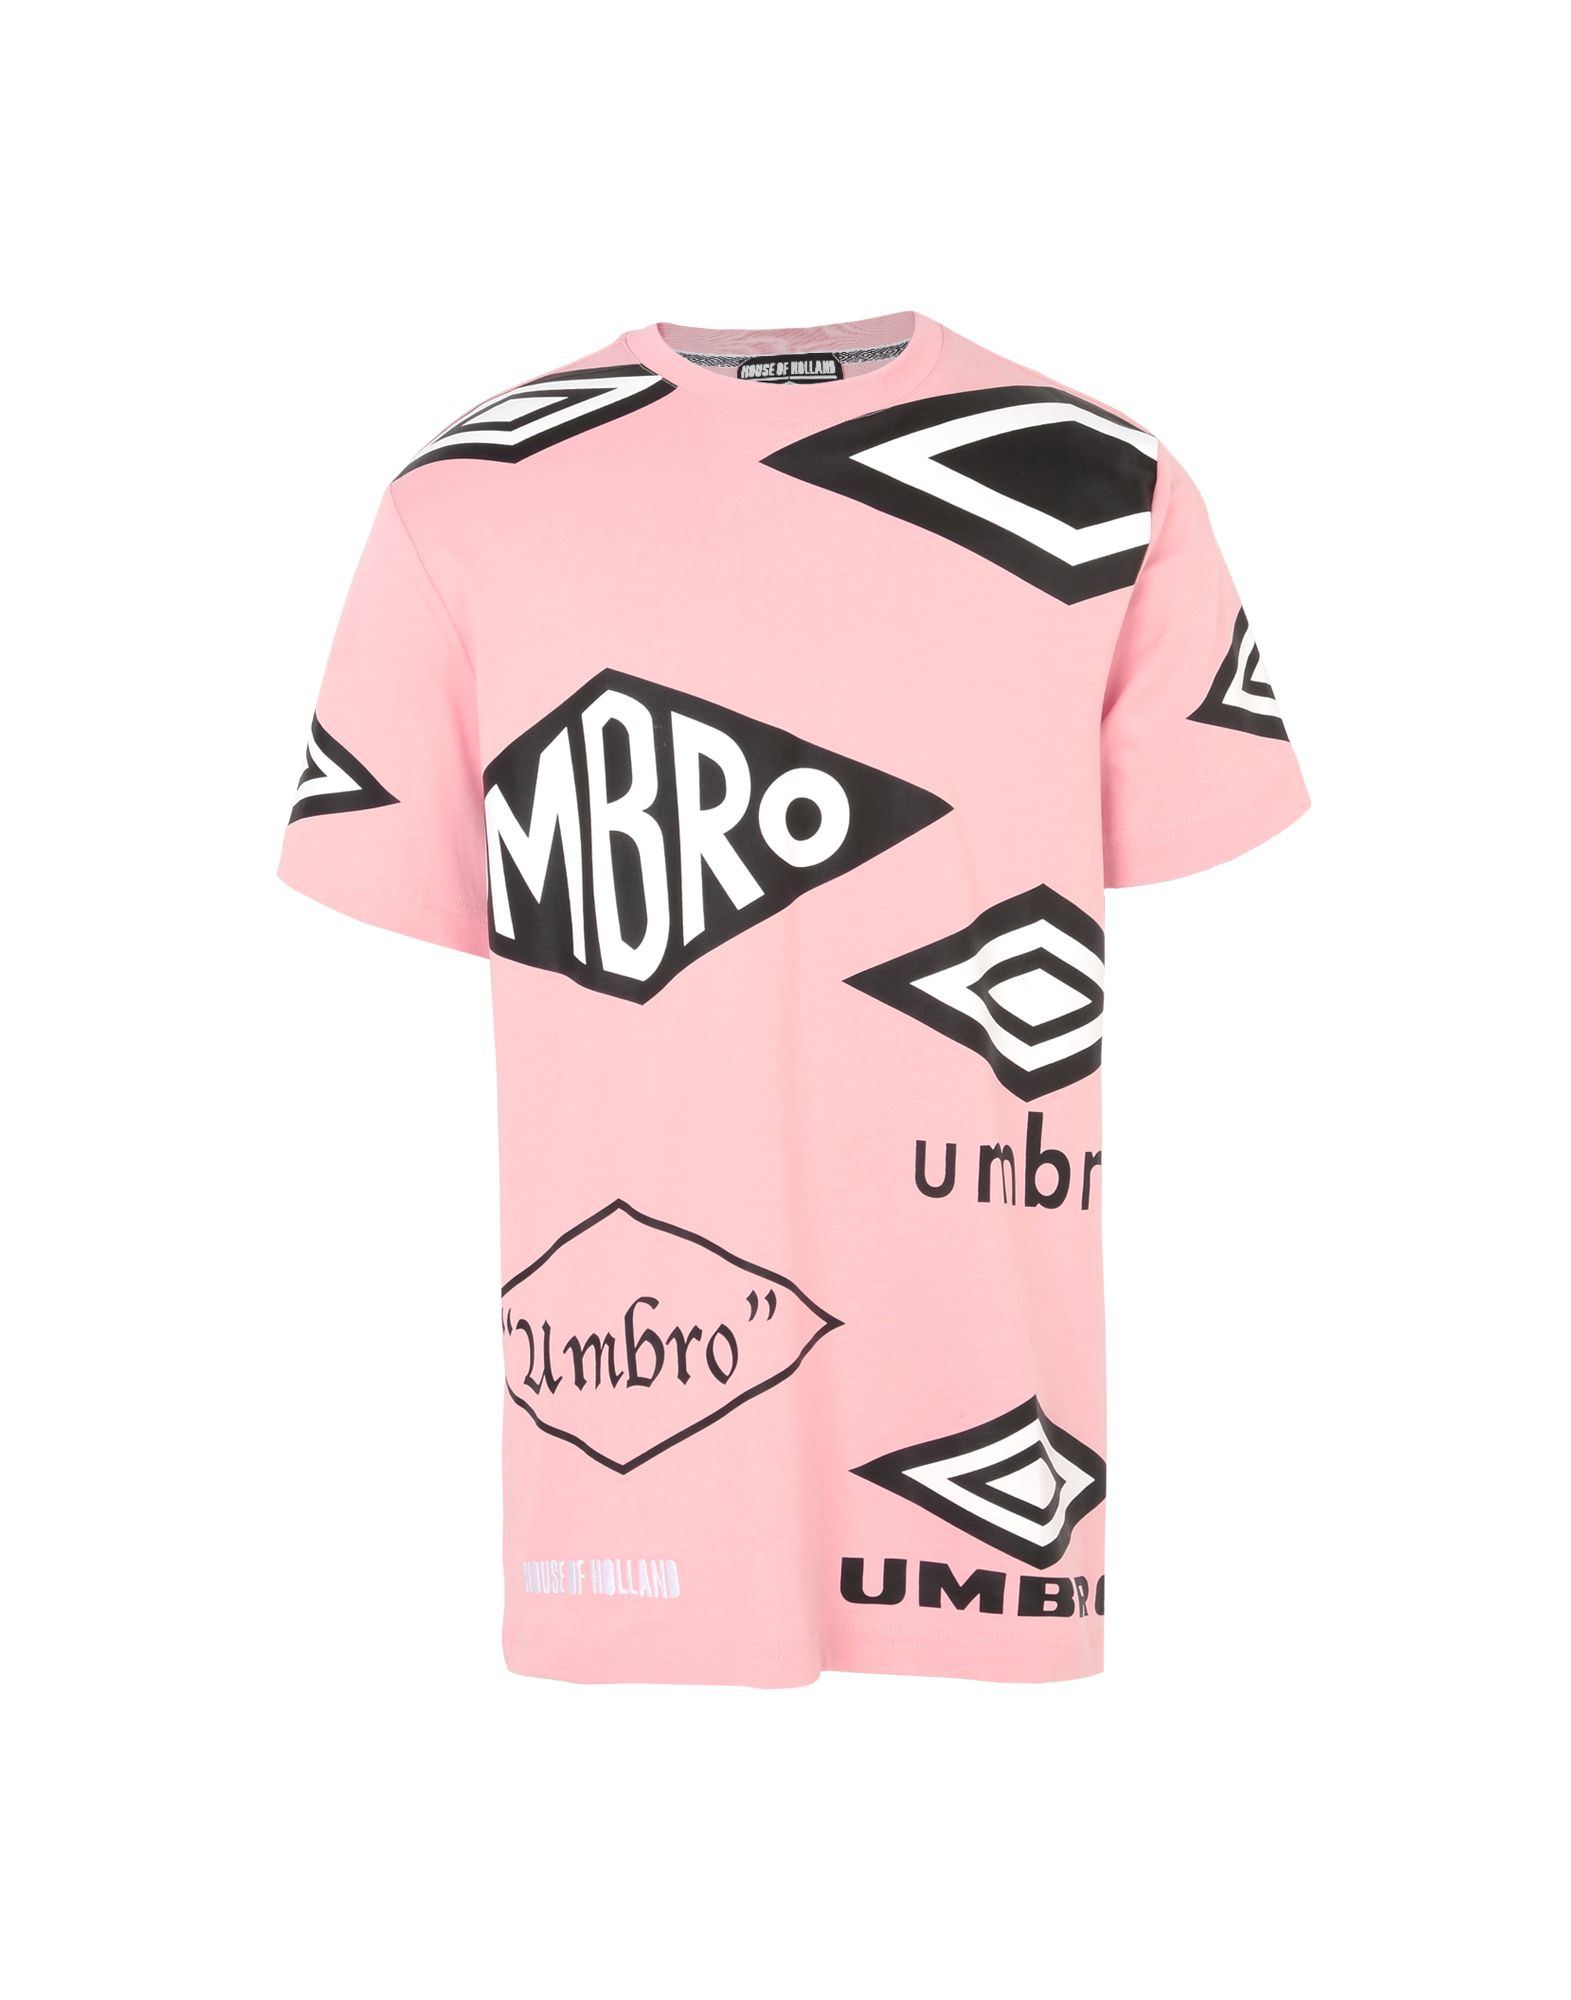 UMBRO x HOUSE OF HOLLAND Футболка